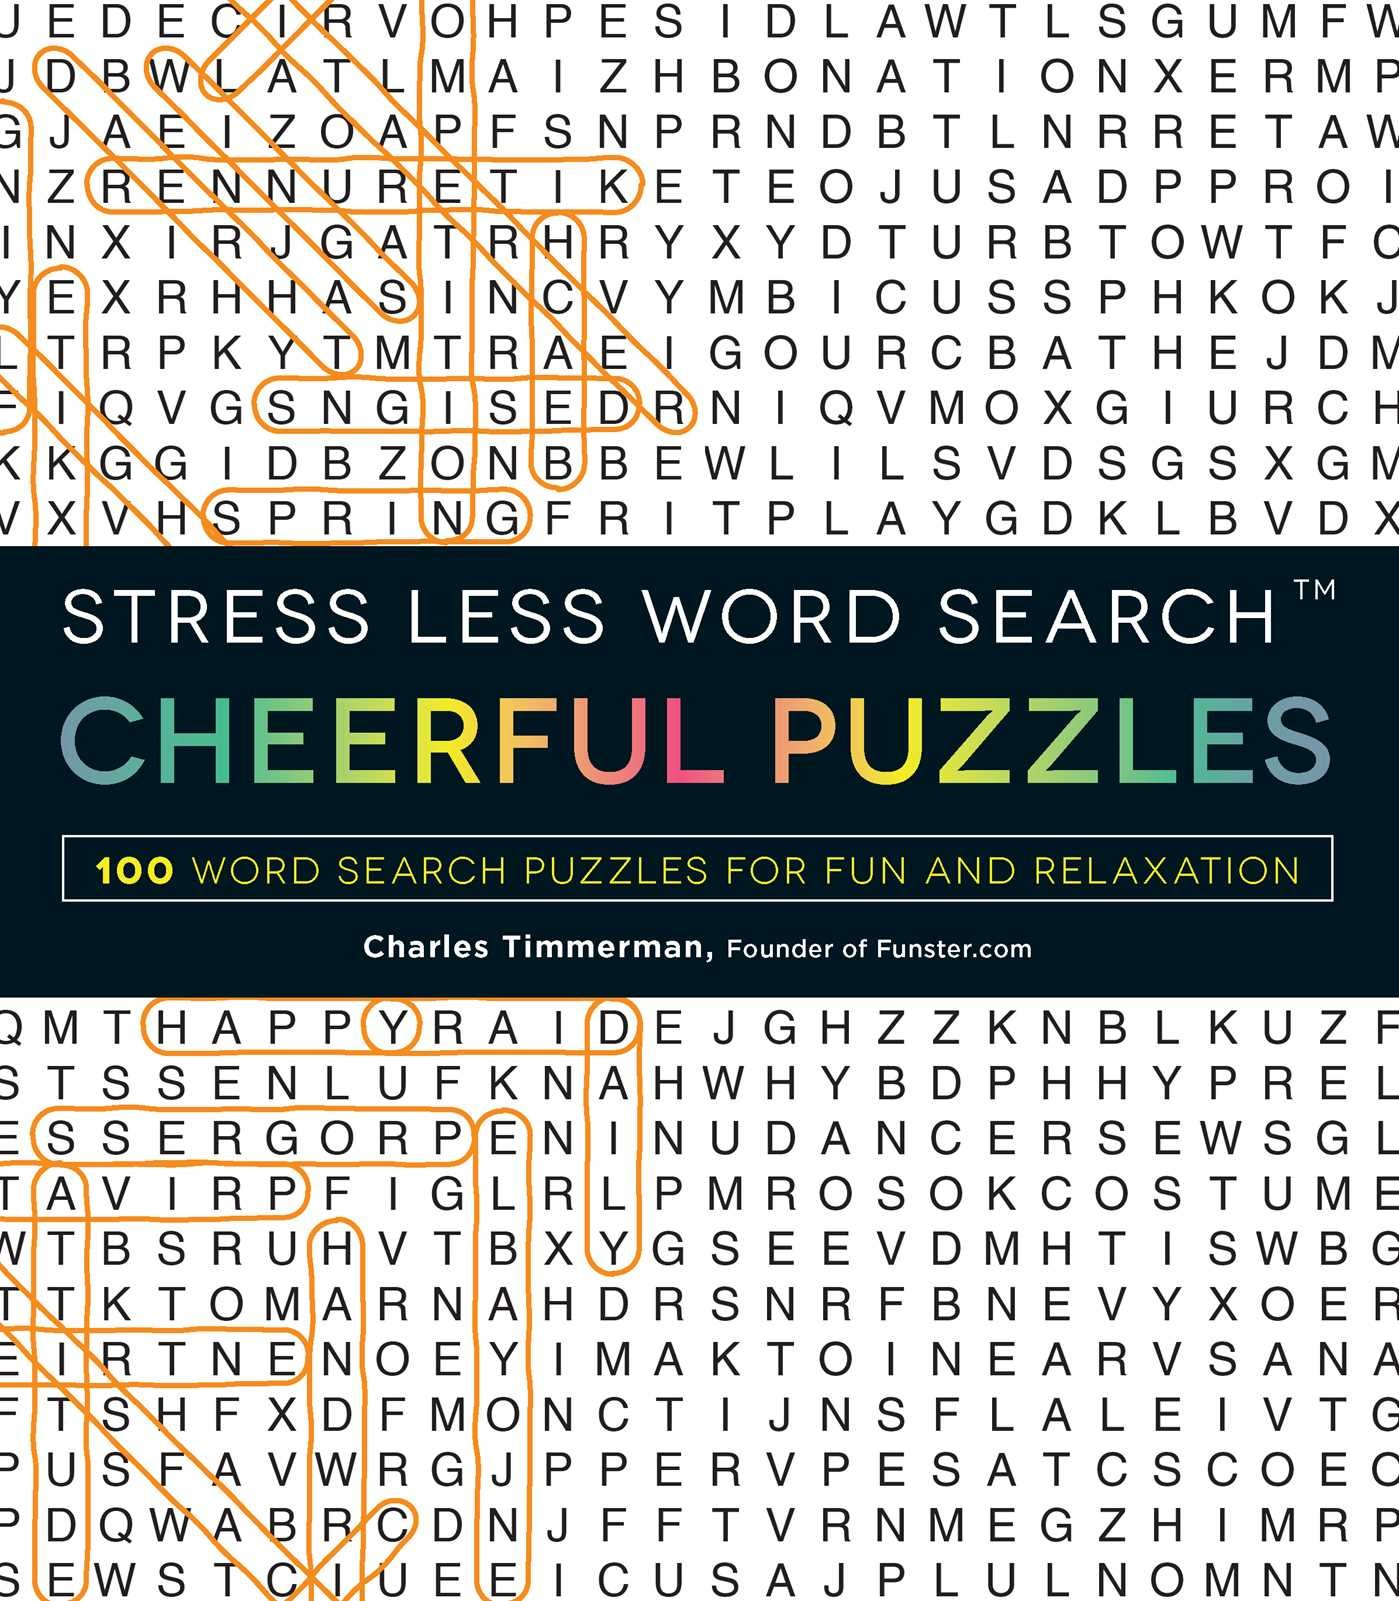 Image OfStress Less Word Search - Cheerful Puzzles: 100 Word Search Puzzles For Fun And Relaxation